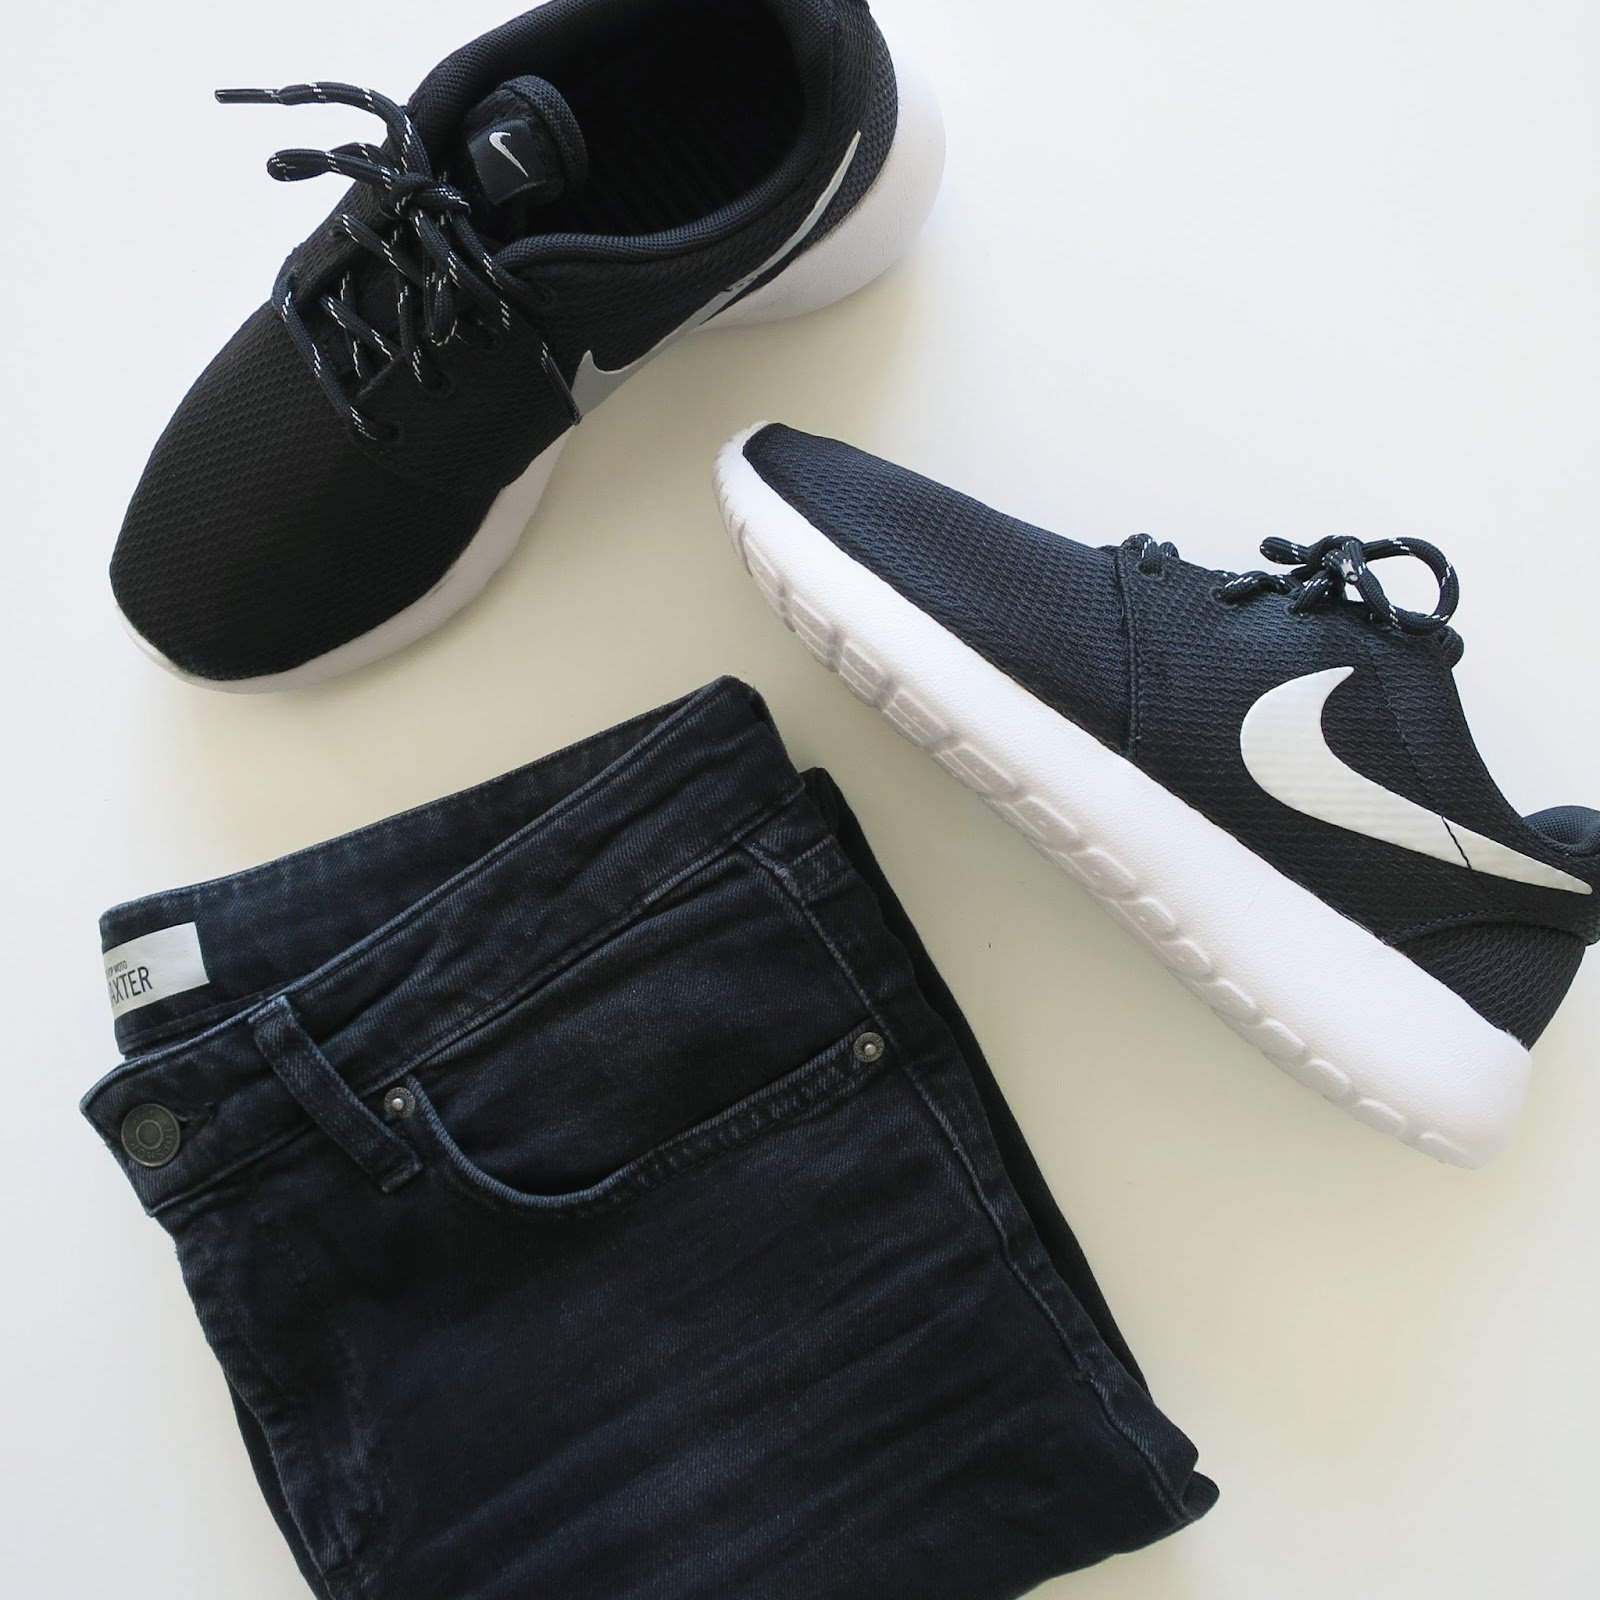 quality design 03960 905d3 Susie So So: Nike Roshe One